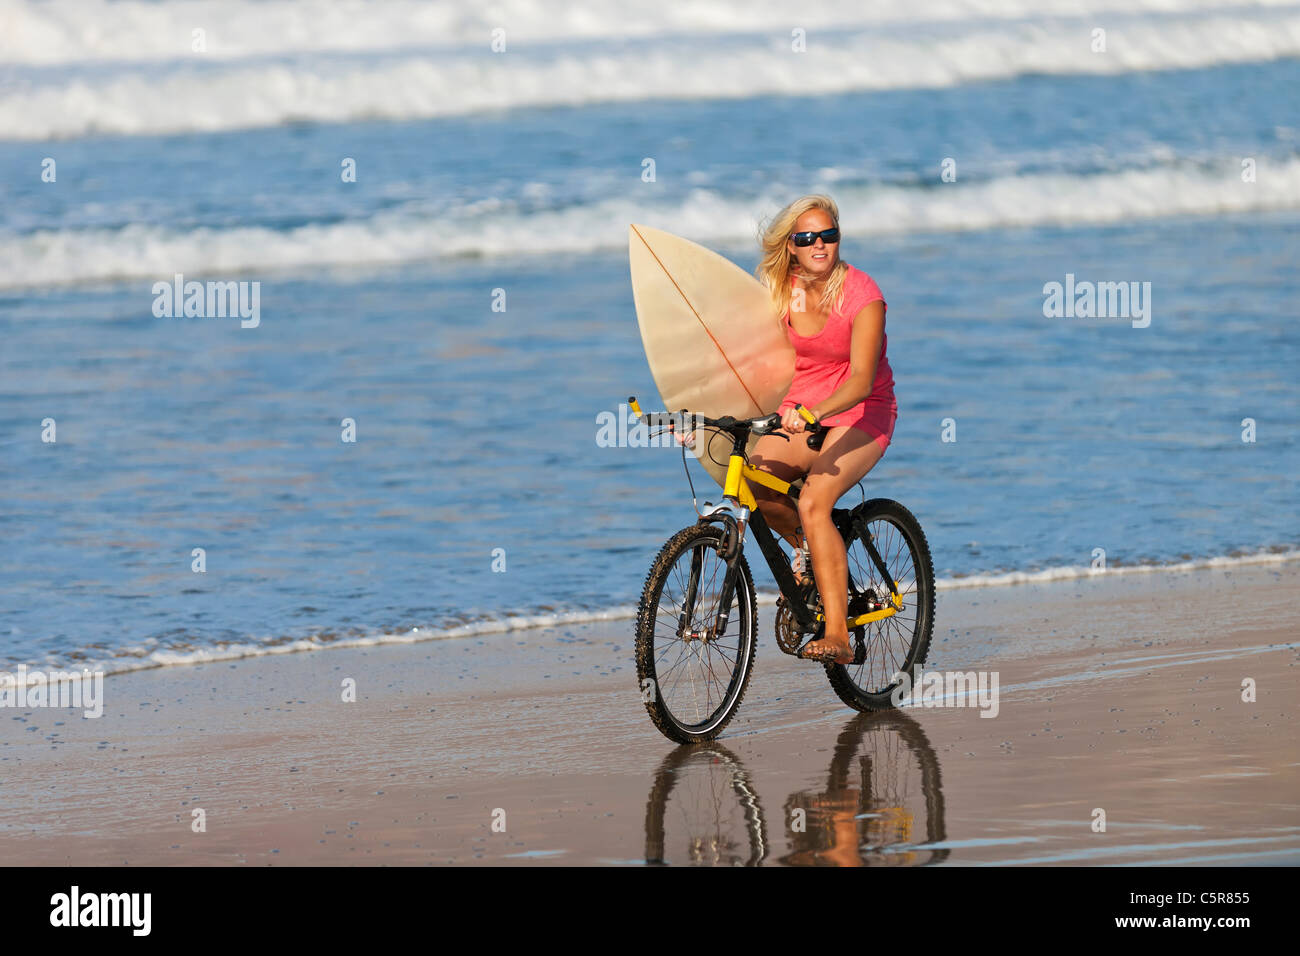 A surfer riding a mountain bike to the ocean. - Stock Image